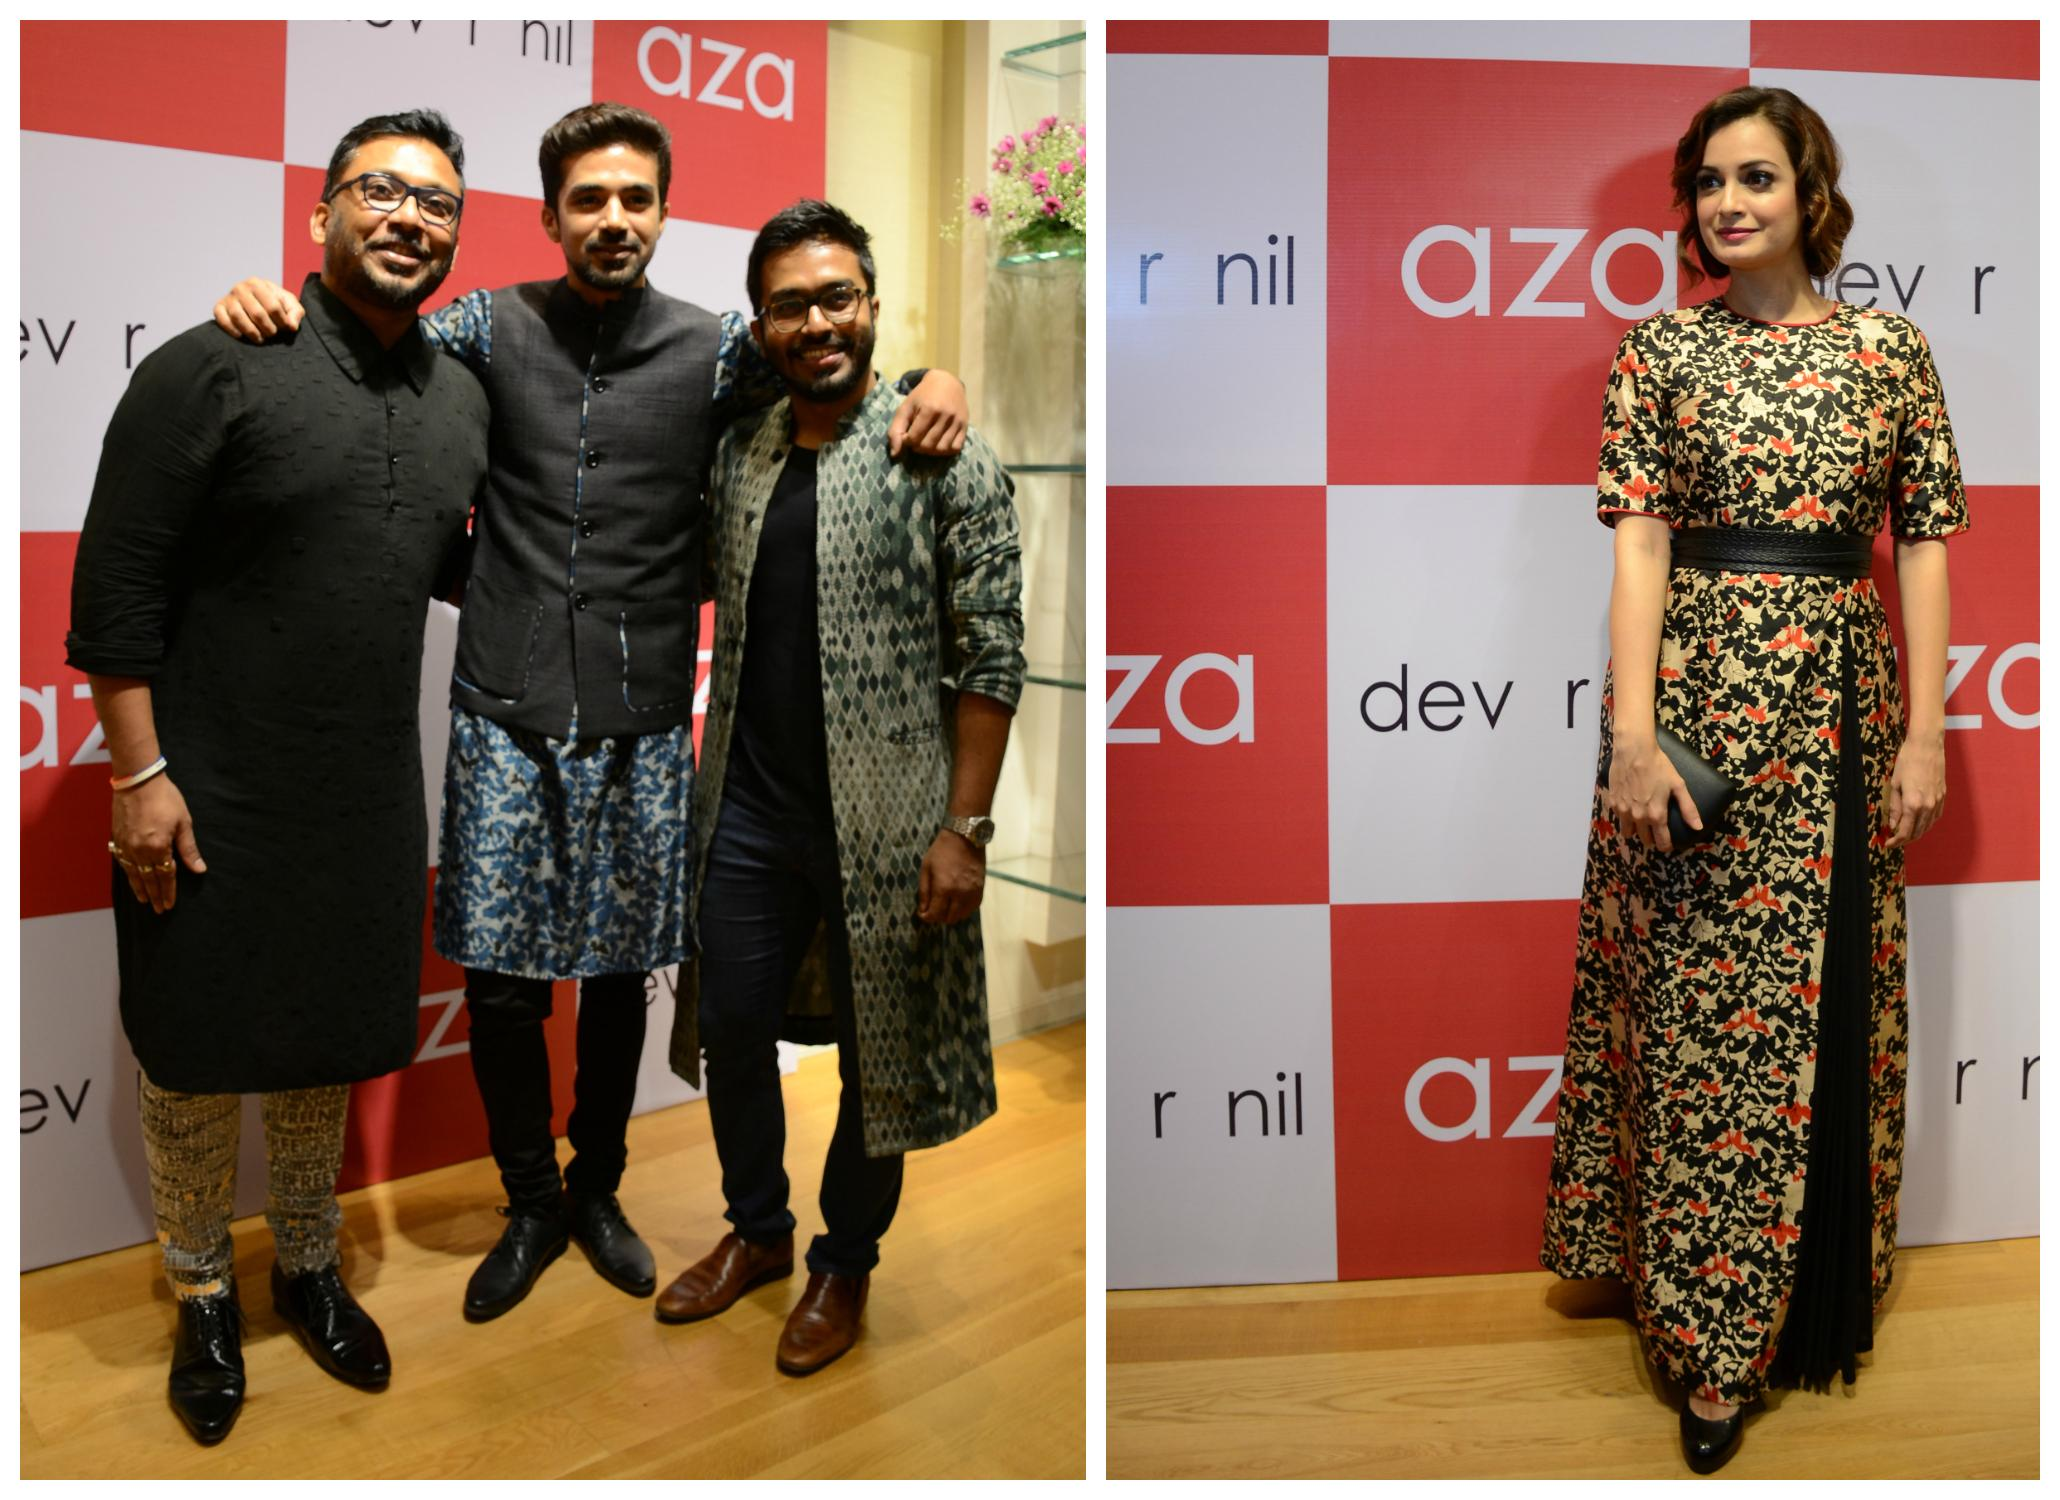 371e8c06dd6ab0 An exclusive preview of Dev R Nil's festive luxury pret' line was hosted at  Aza's Bandra store where the designer duo showcased their Autumn Winter ...